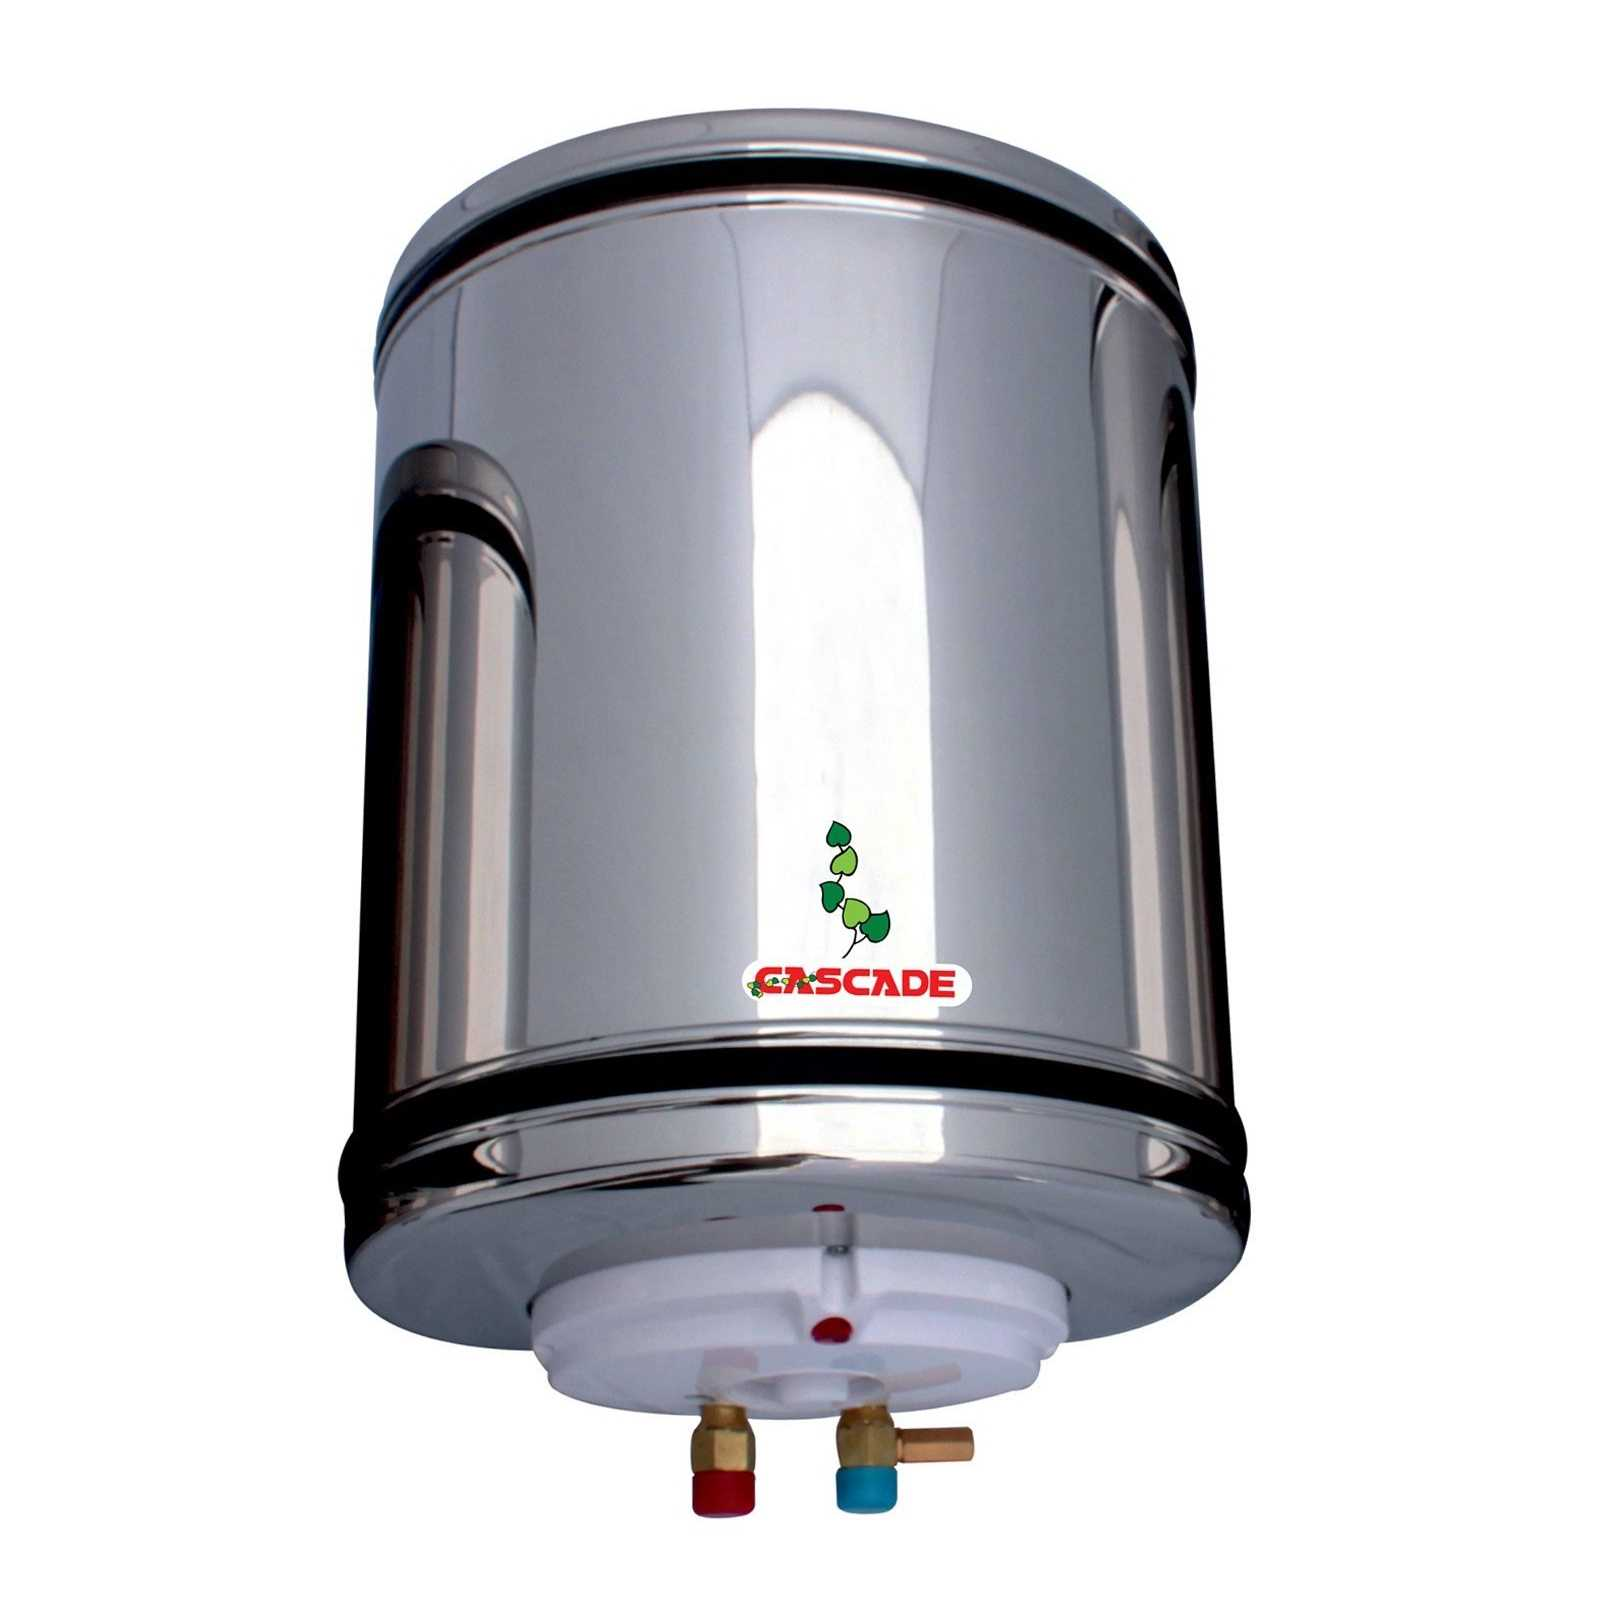 Cascade Tuffy Max Surge 25 Litre Storage Water Heater